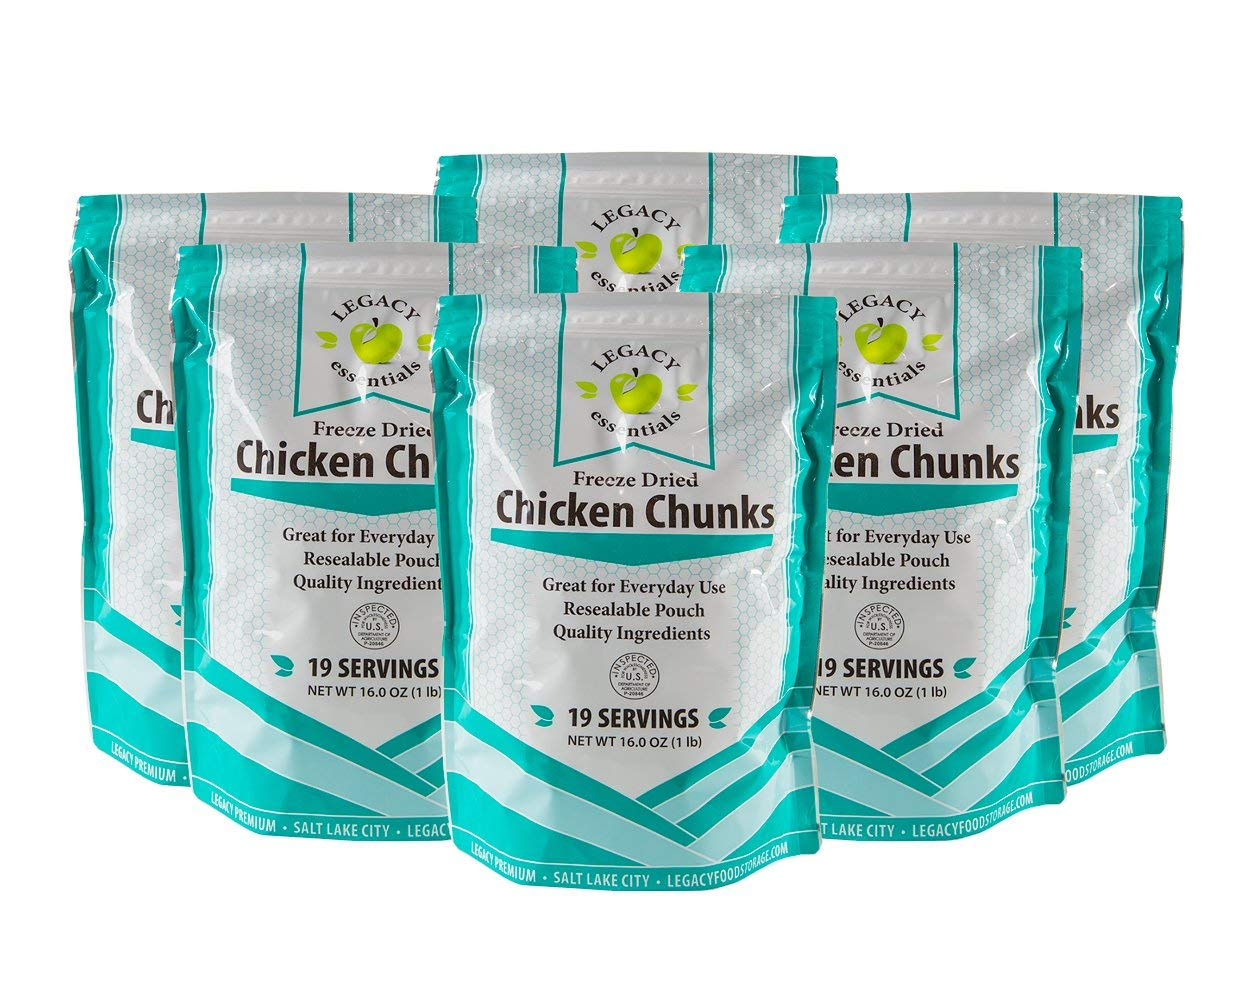 Freeze Dried Chicken Supply: Emergency Food Storage Chicken Dices - Survival Prepper Meat / Camping / Hiking / RV / Fishing (Quantity 6)